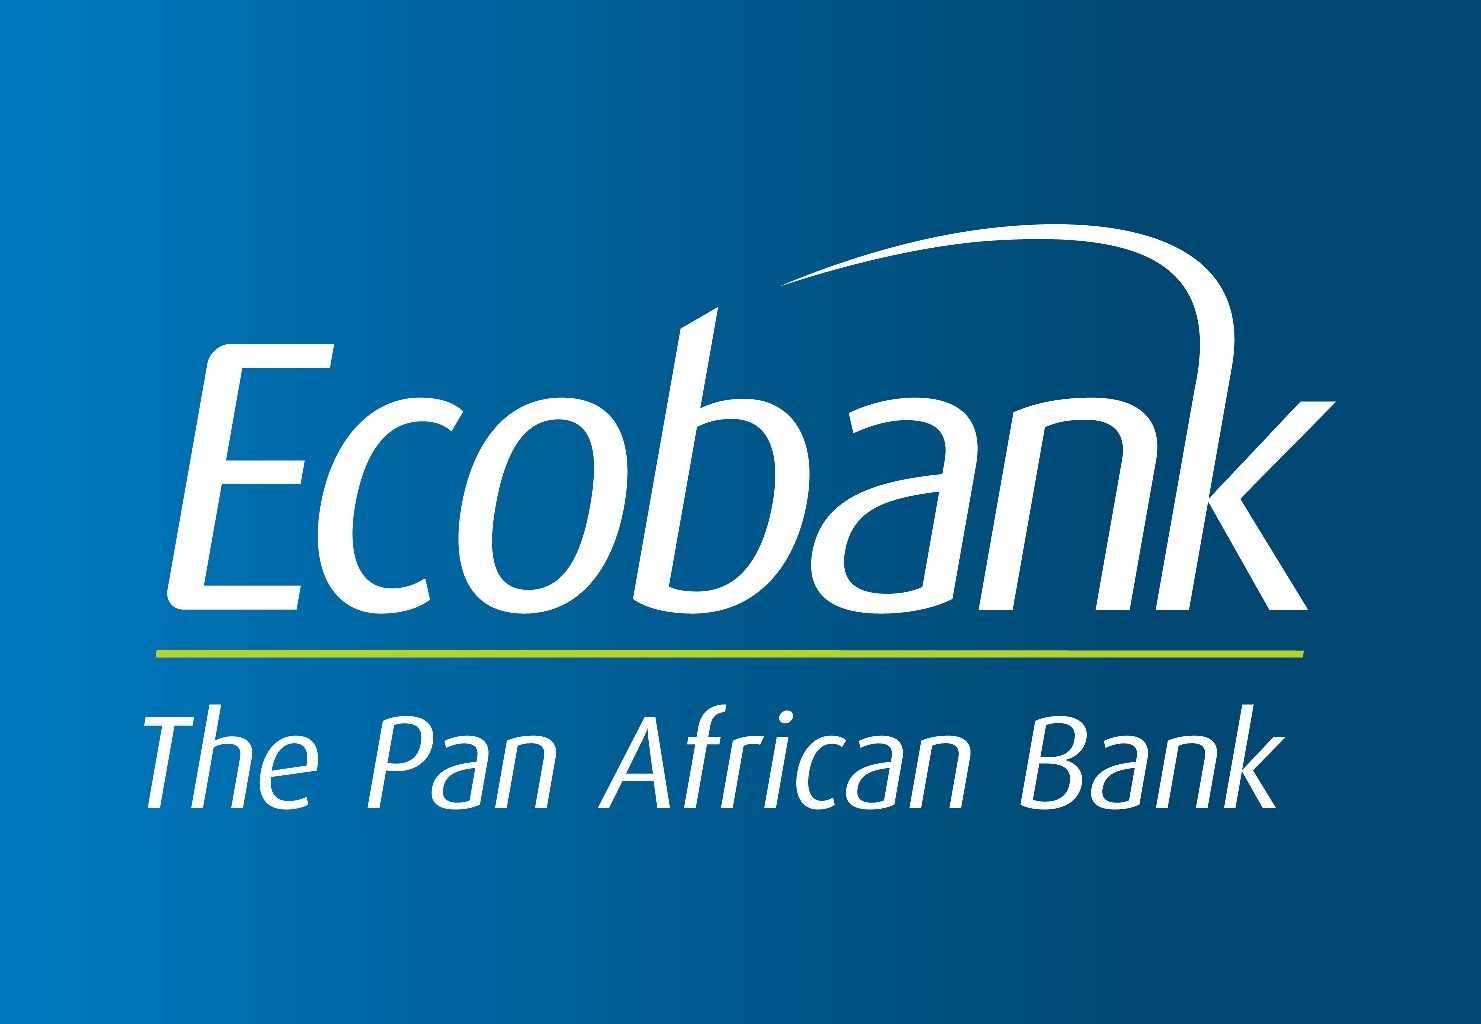 Ecobank Transnational Incorporated Logo